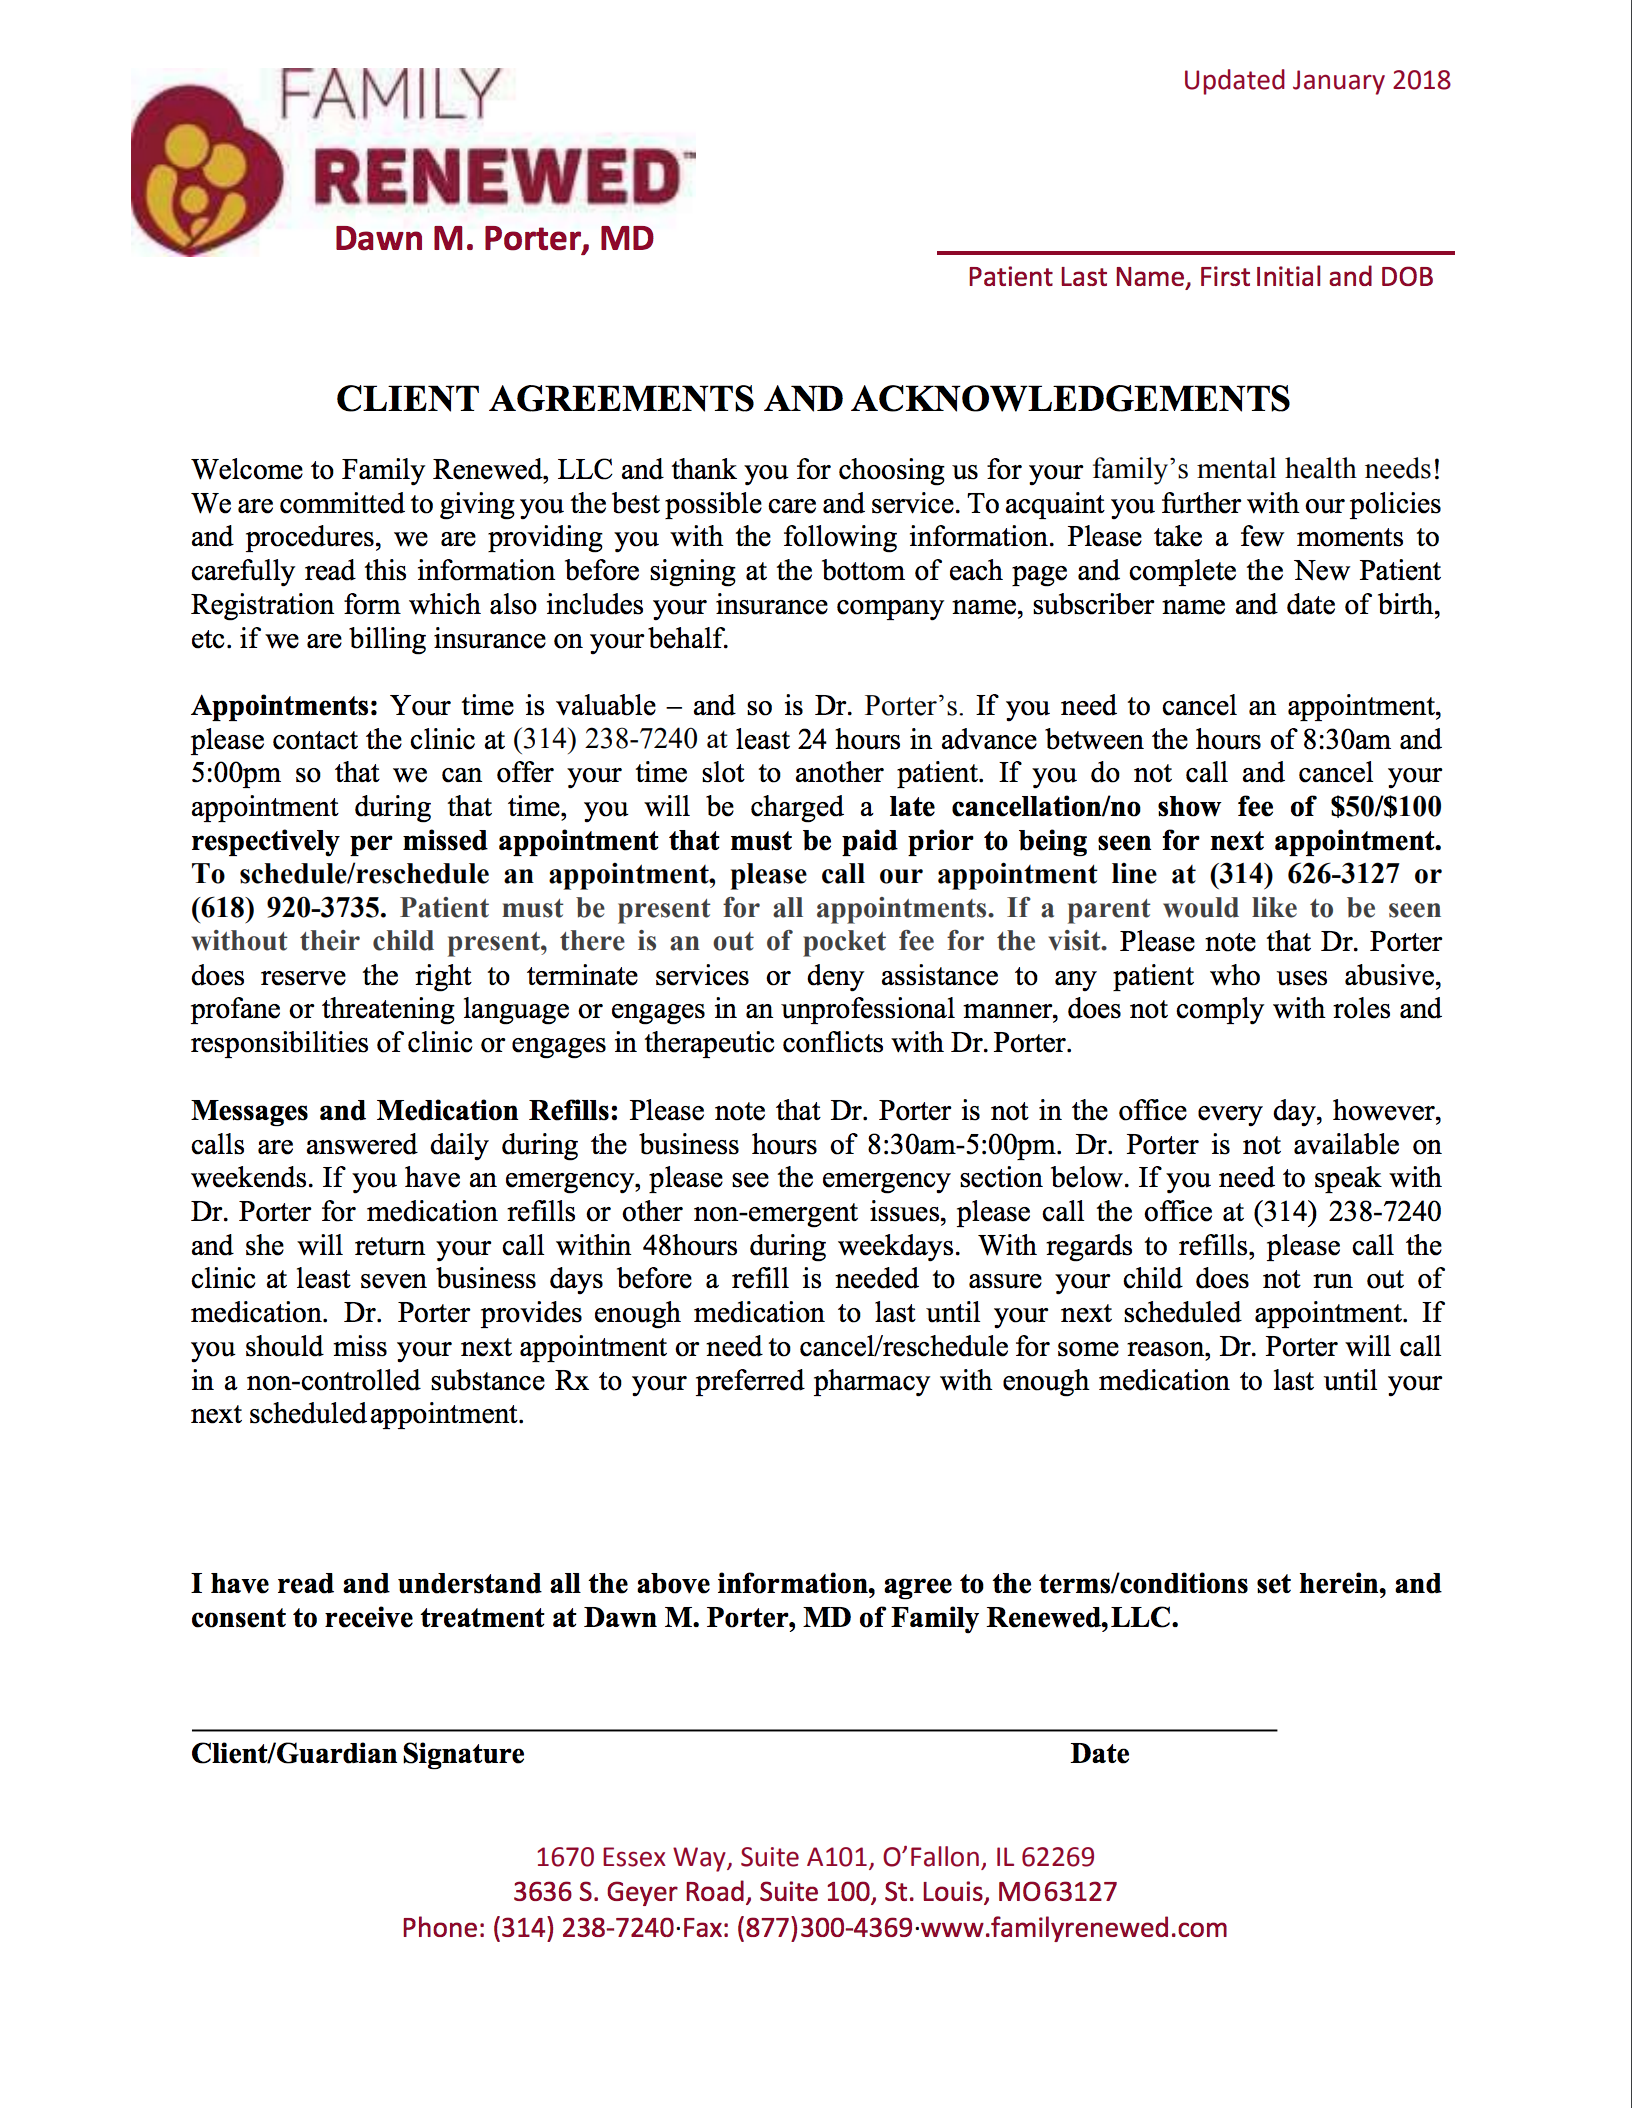 FR Client Agreements and Acknowledgments 10-31-15